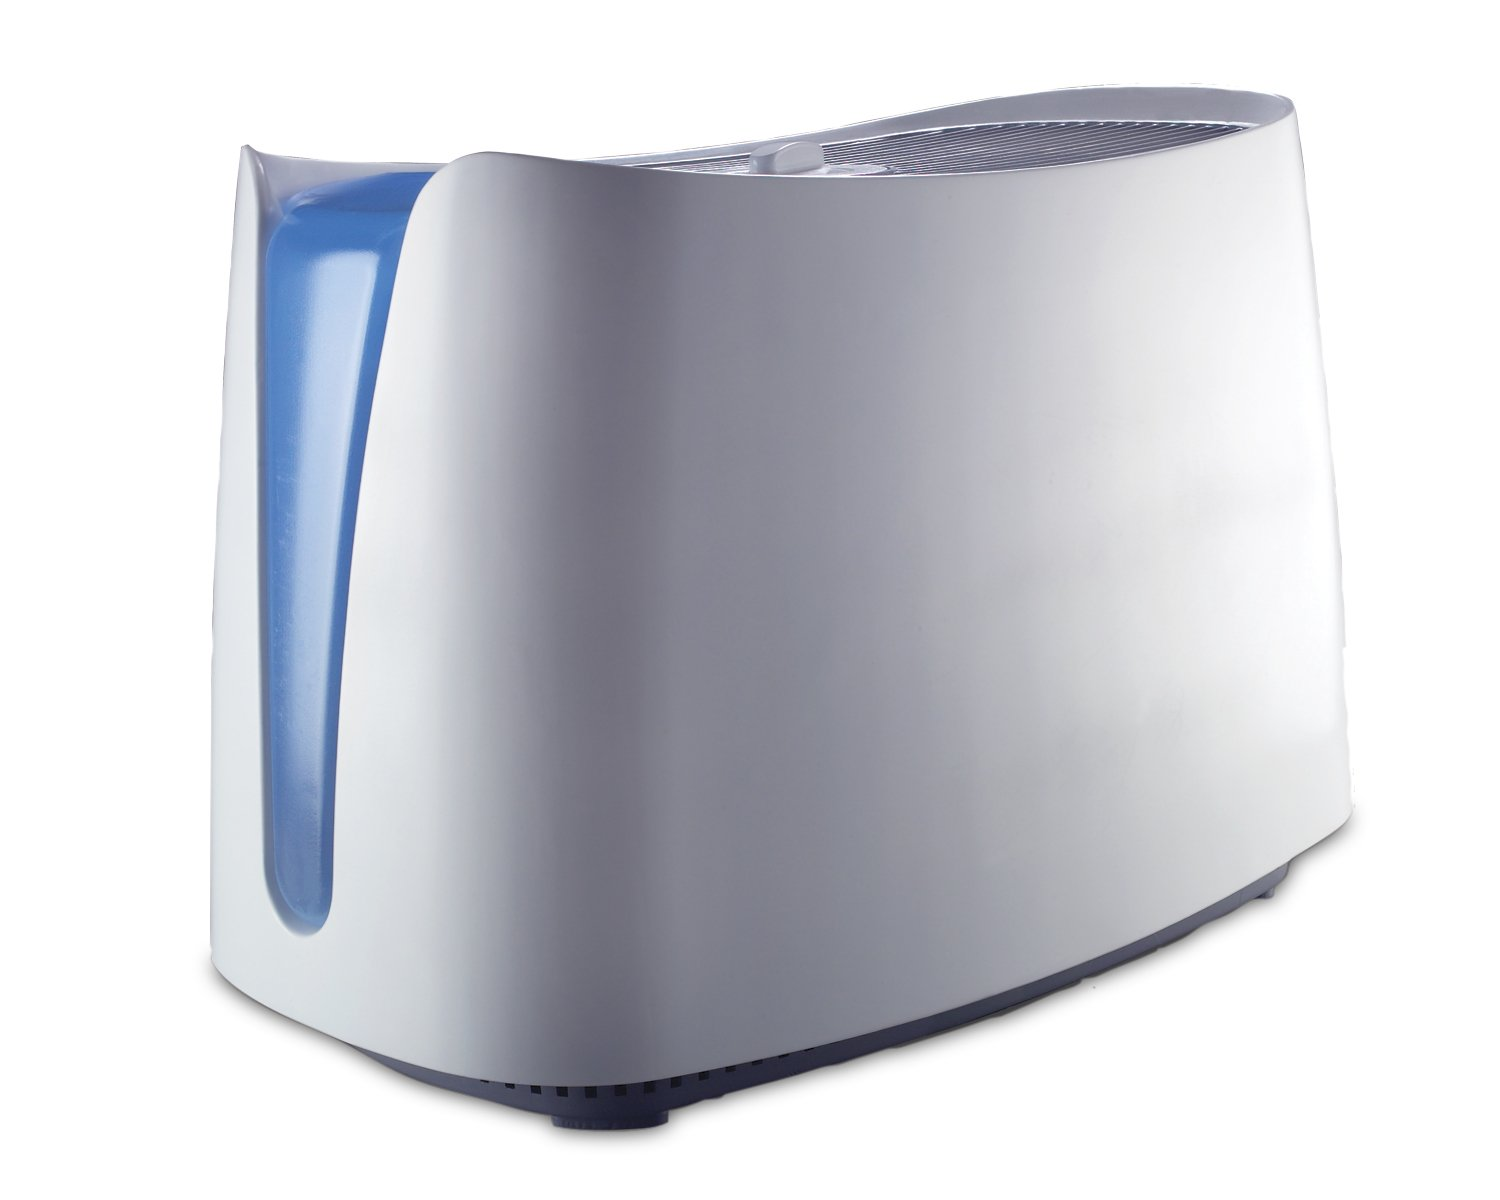 Honeywell HCM350W Humidifier Review